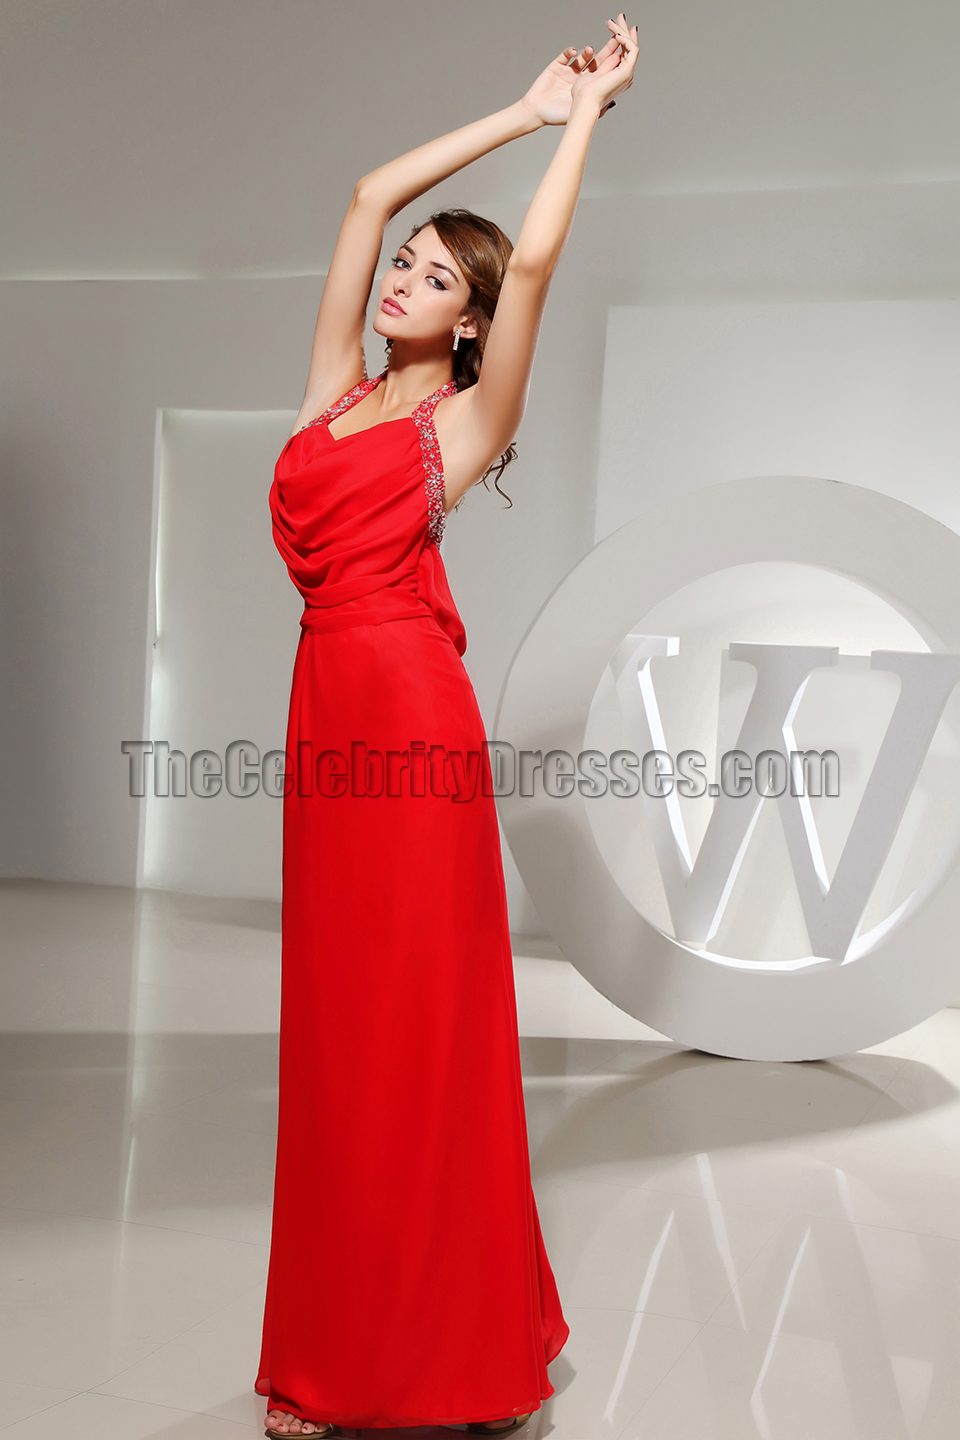 Sexy Red Halter Backless Evening Dress Prom Gowns ...